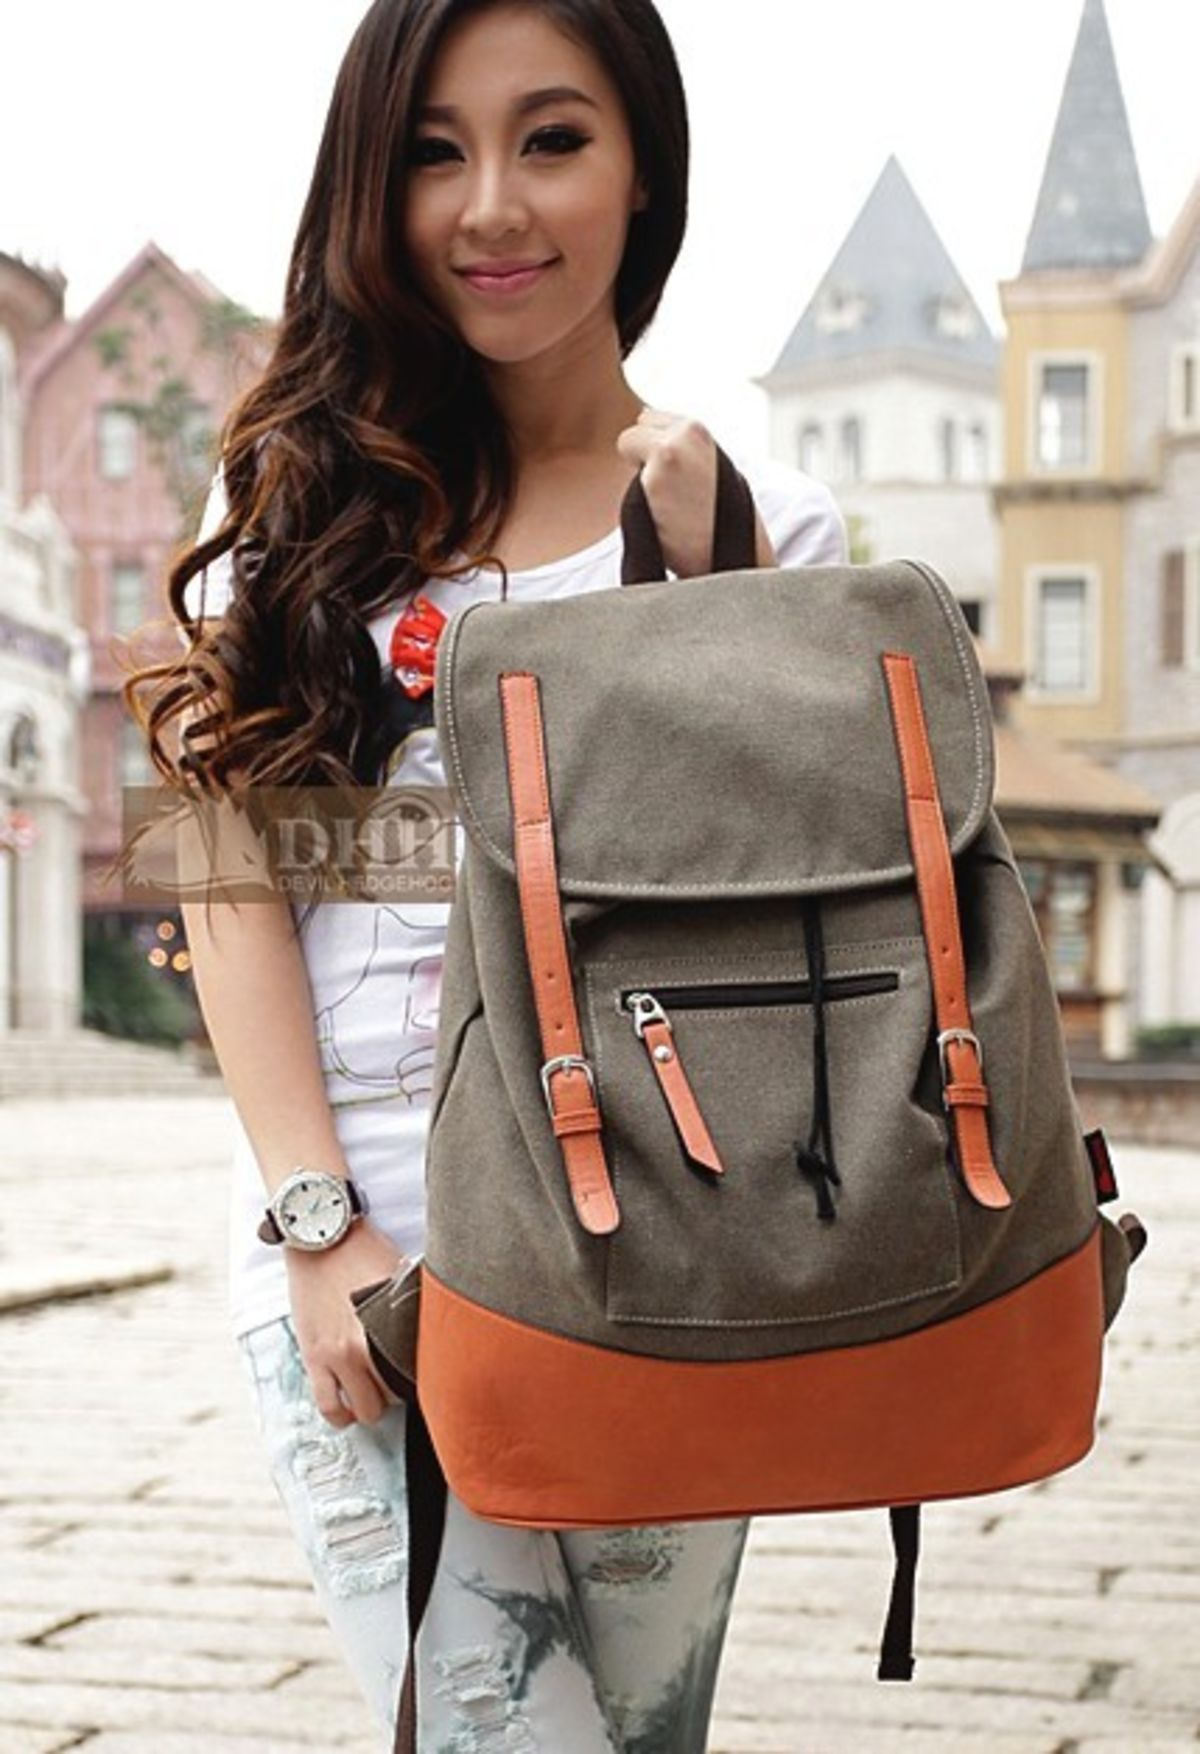 Best Backpacks For Women - Crazy Backpacks